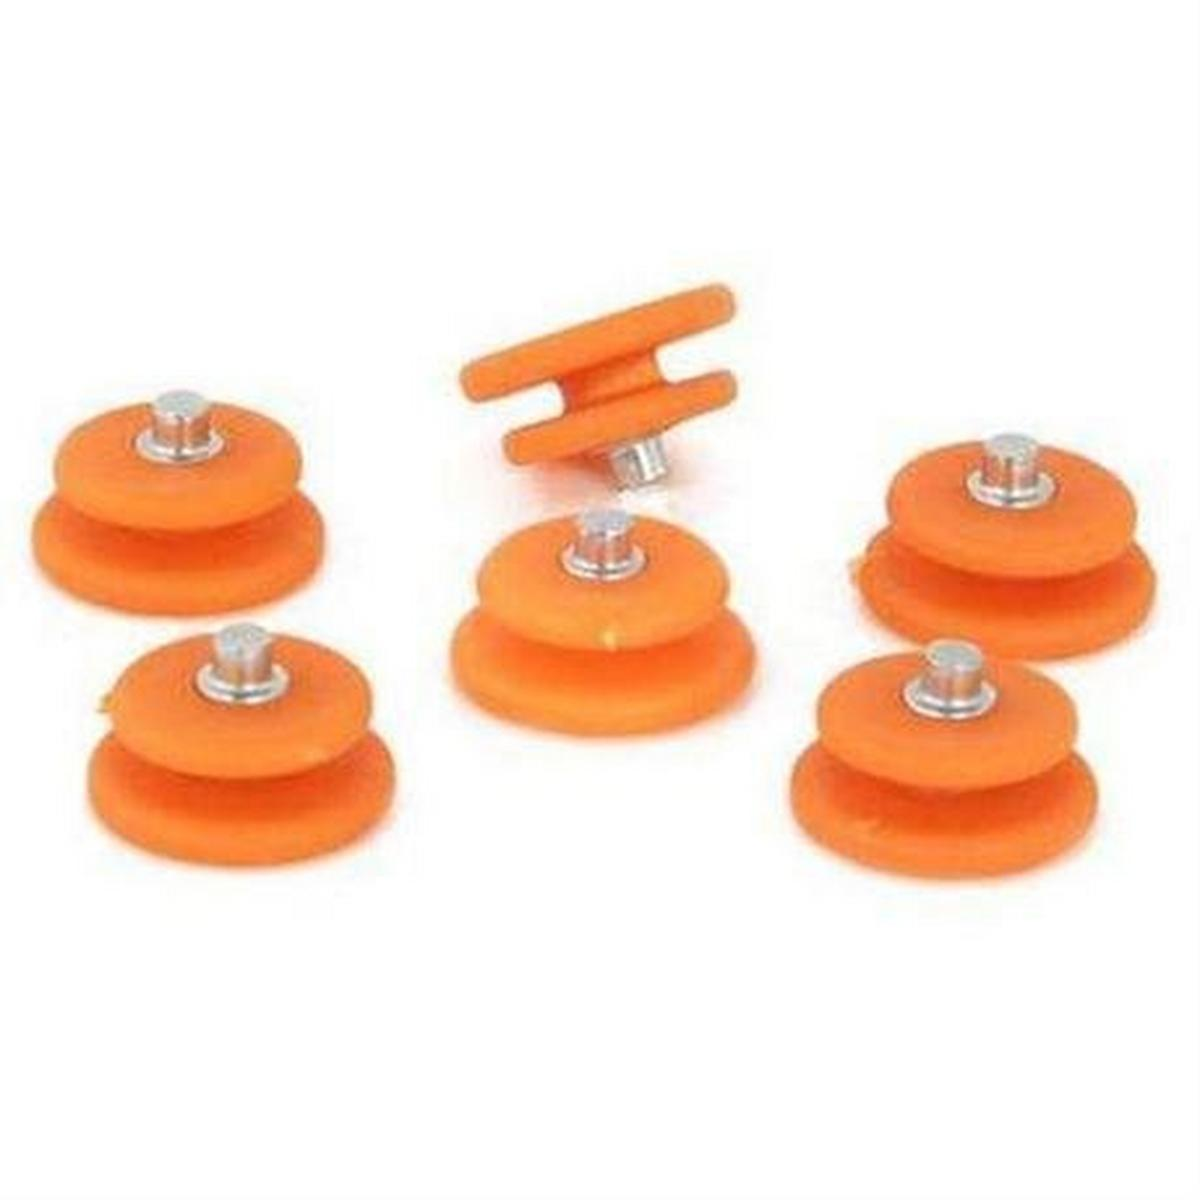 Petzl Charlet Petzl Spiky Pavement Crampon Rear Replacement Points (Pack of 4)